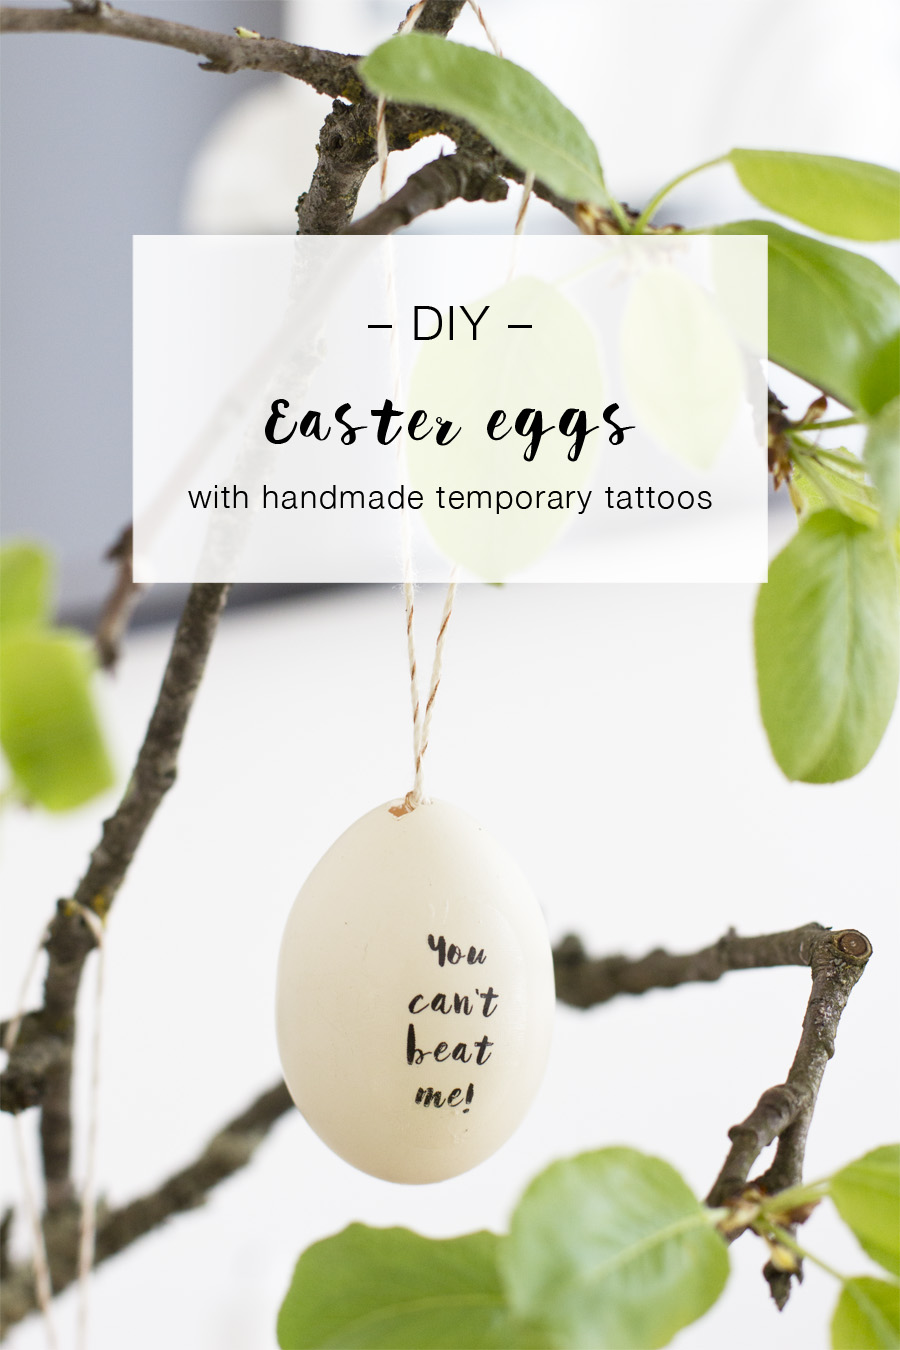 DIY Easter eggs with handmade temporary tattoos | LOOK WHAT I MADE ...